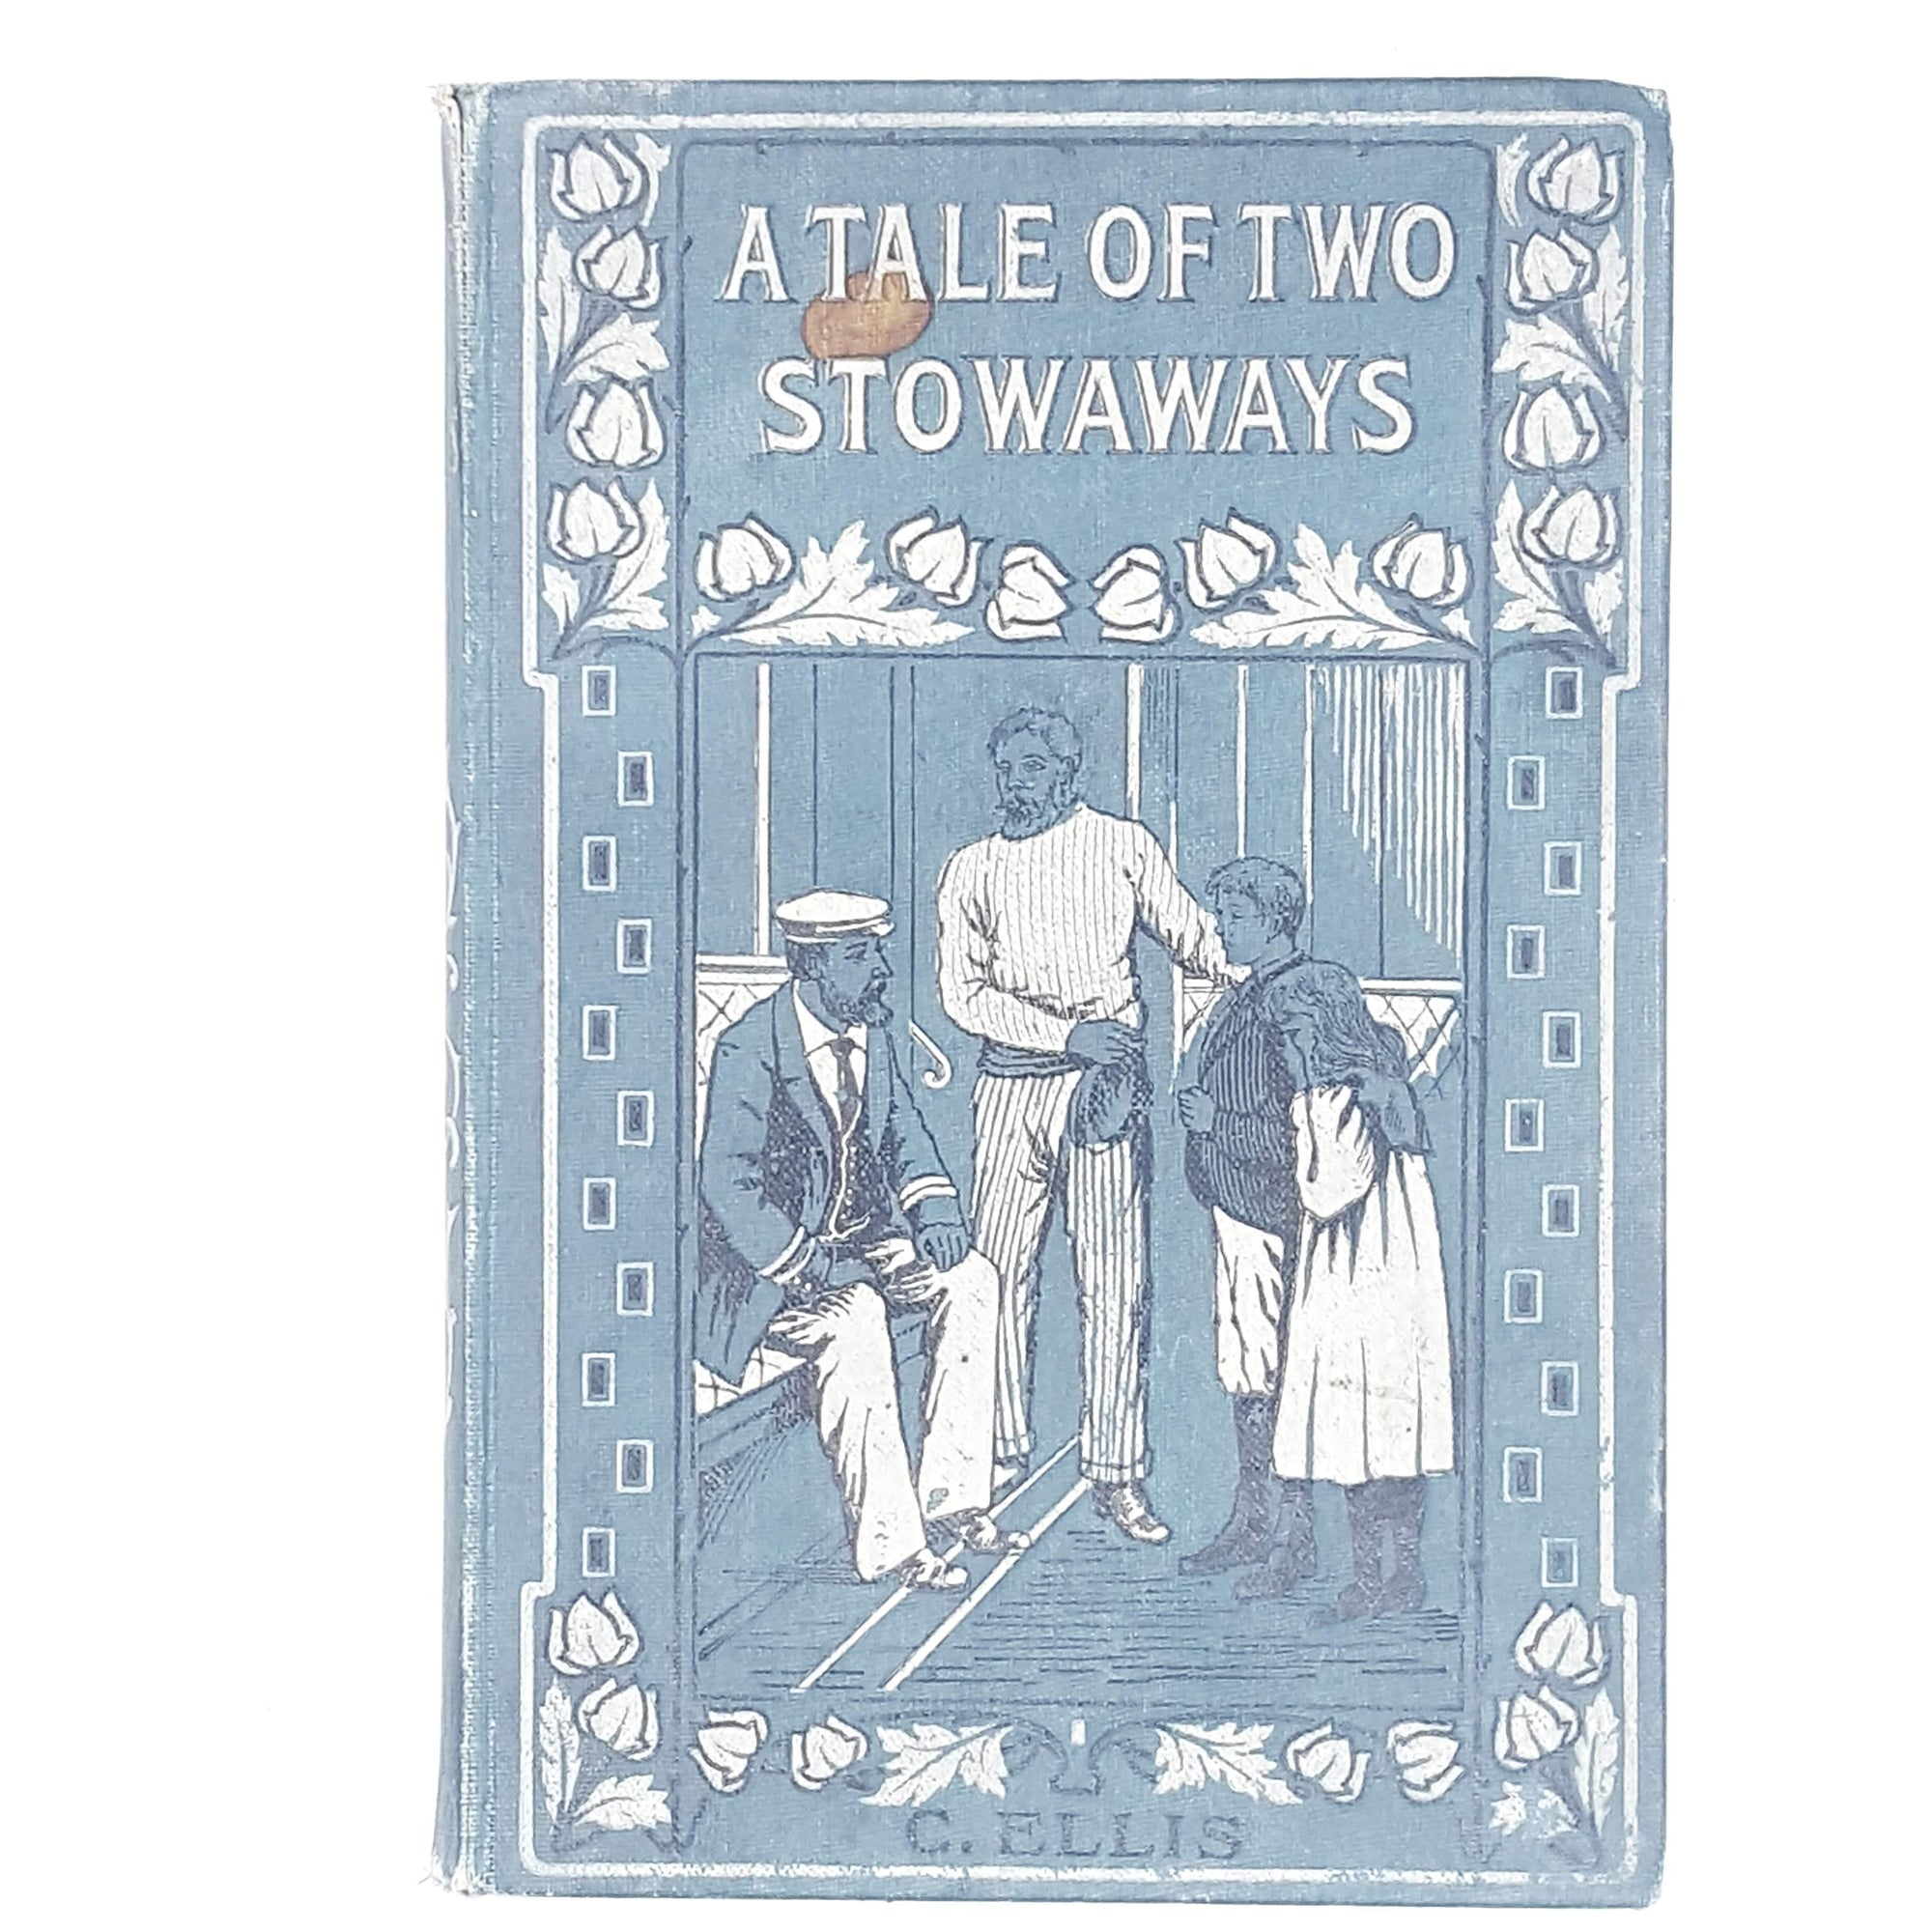 A Tale of Two Stowaways by C. Ellis c1907